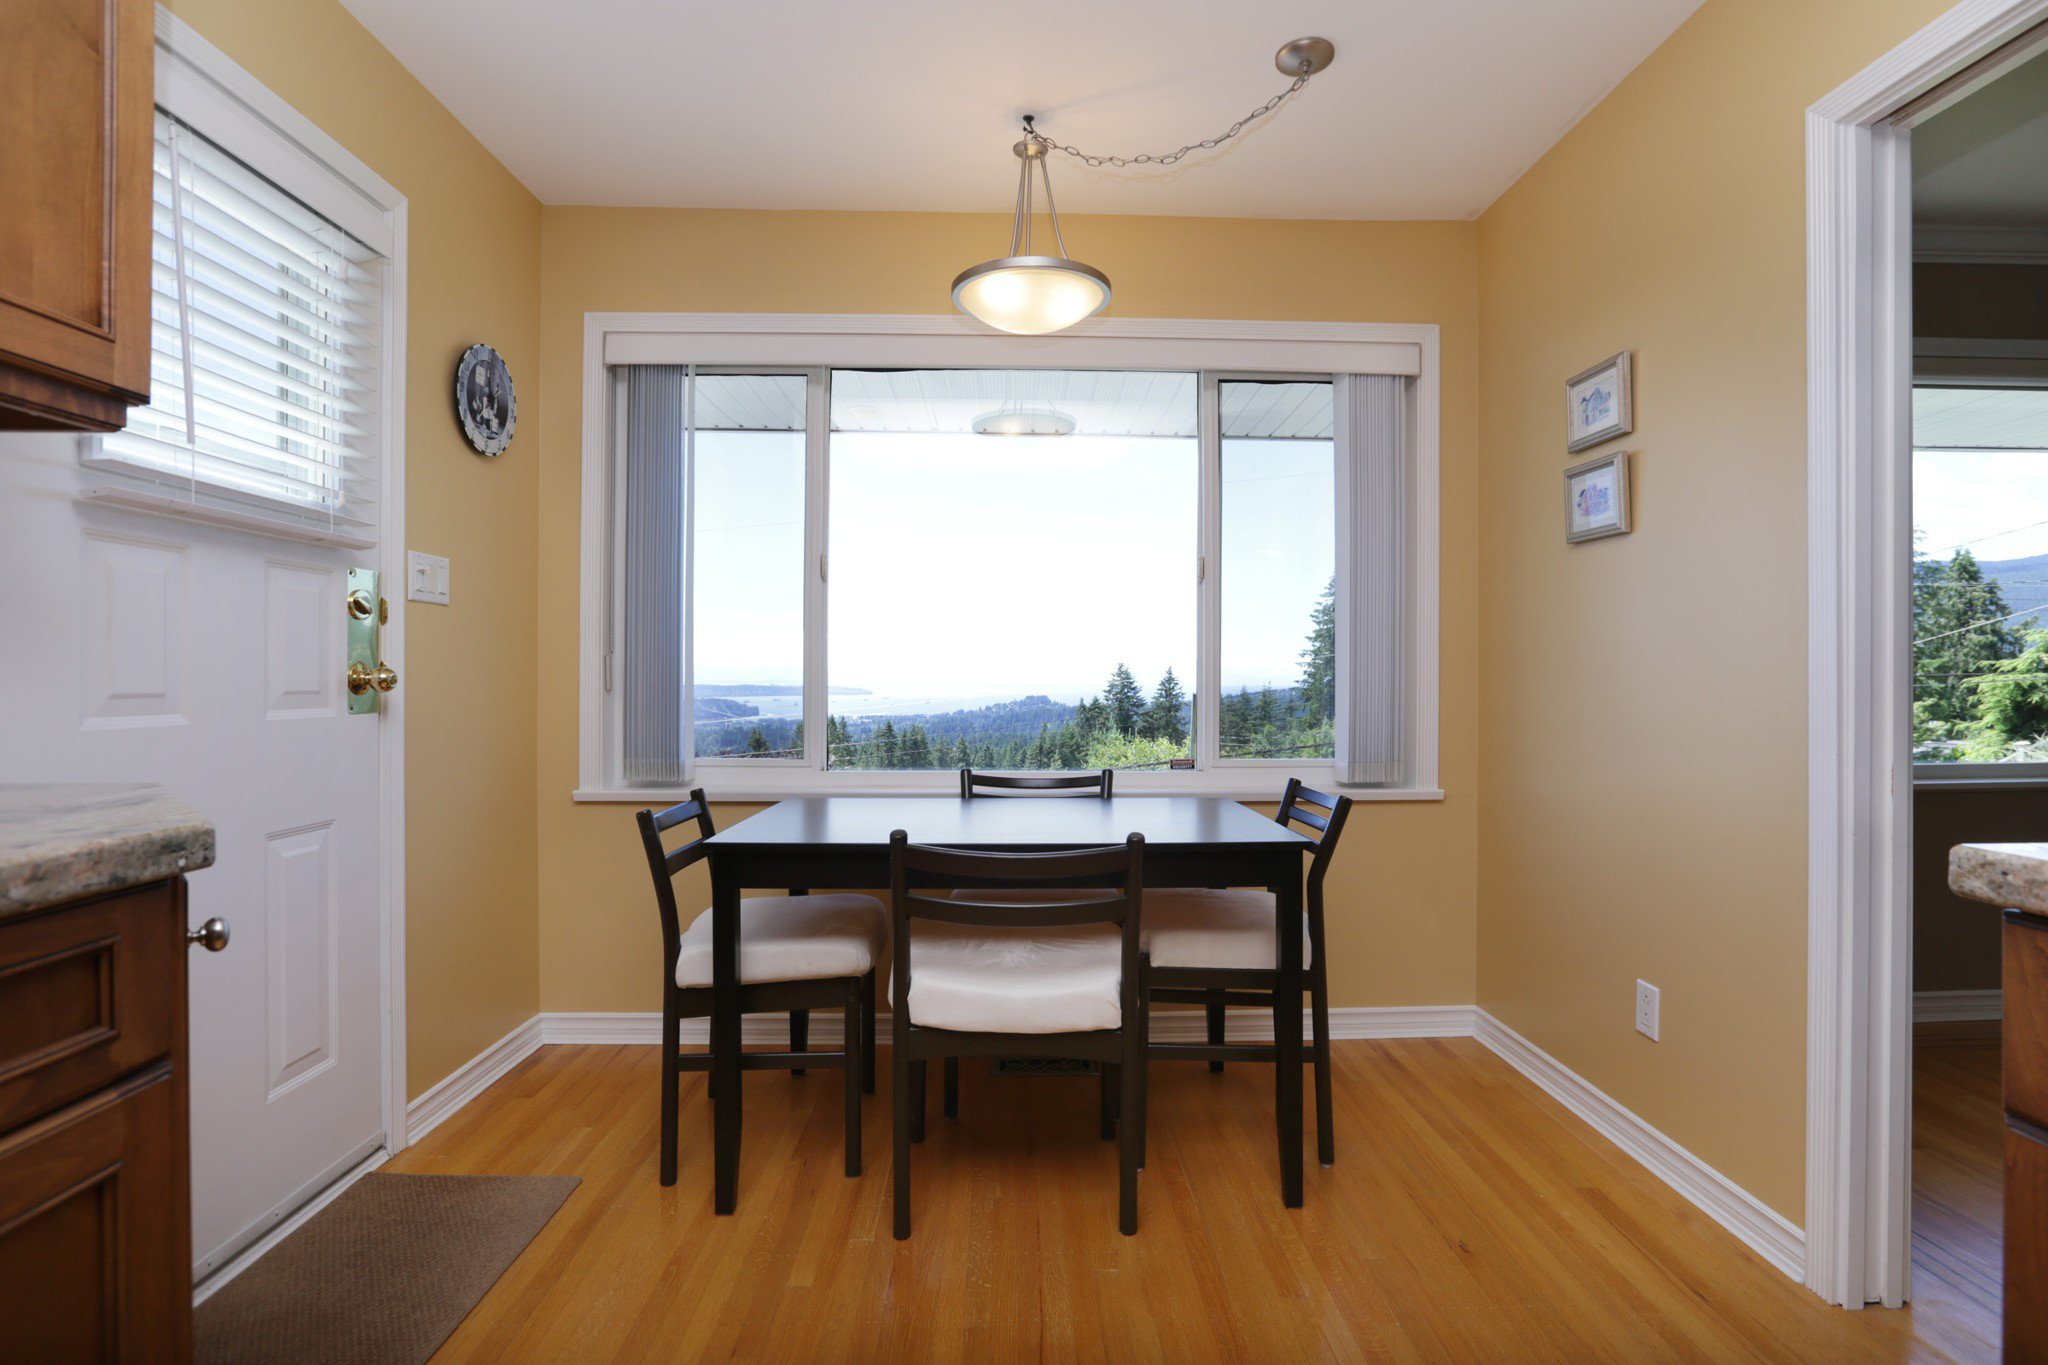 Photo 7: Photos: 372 VENTURA Crescent in North Vancouver: Upper Delbrook House for sale : MLS®# R2284717